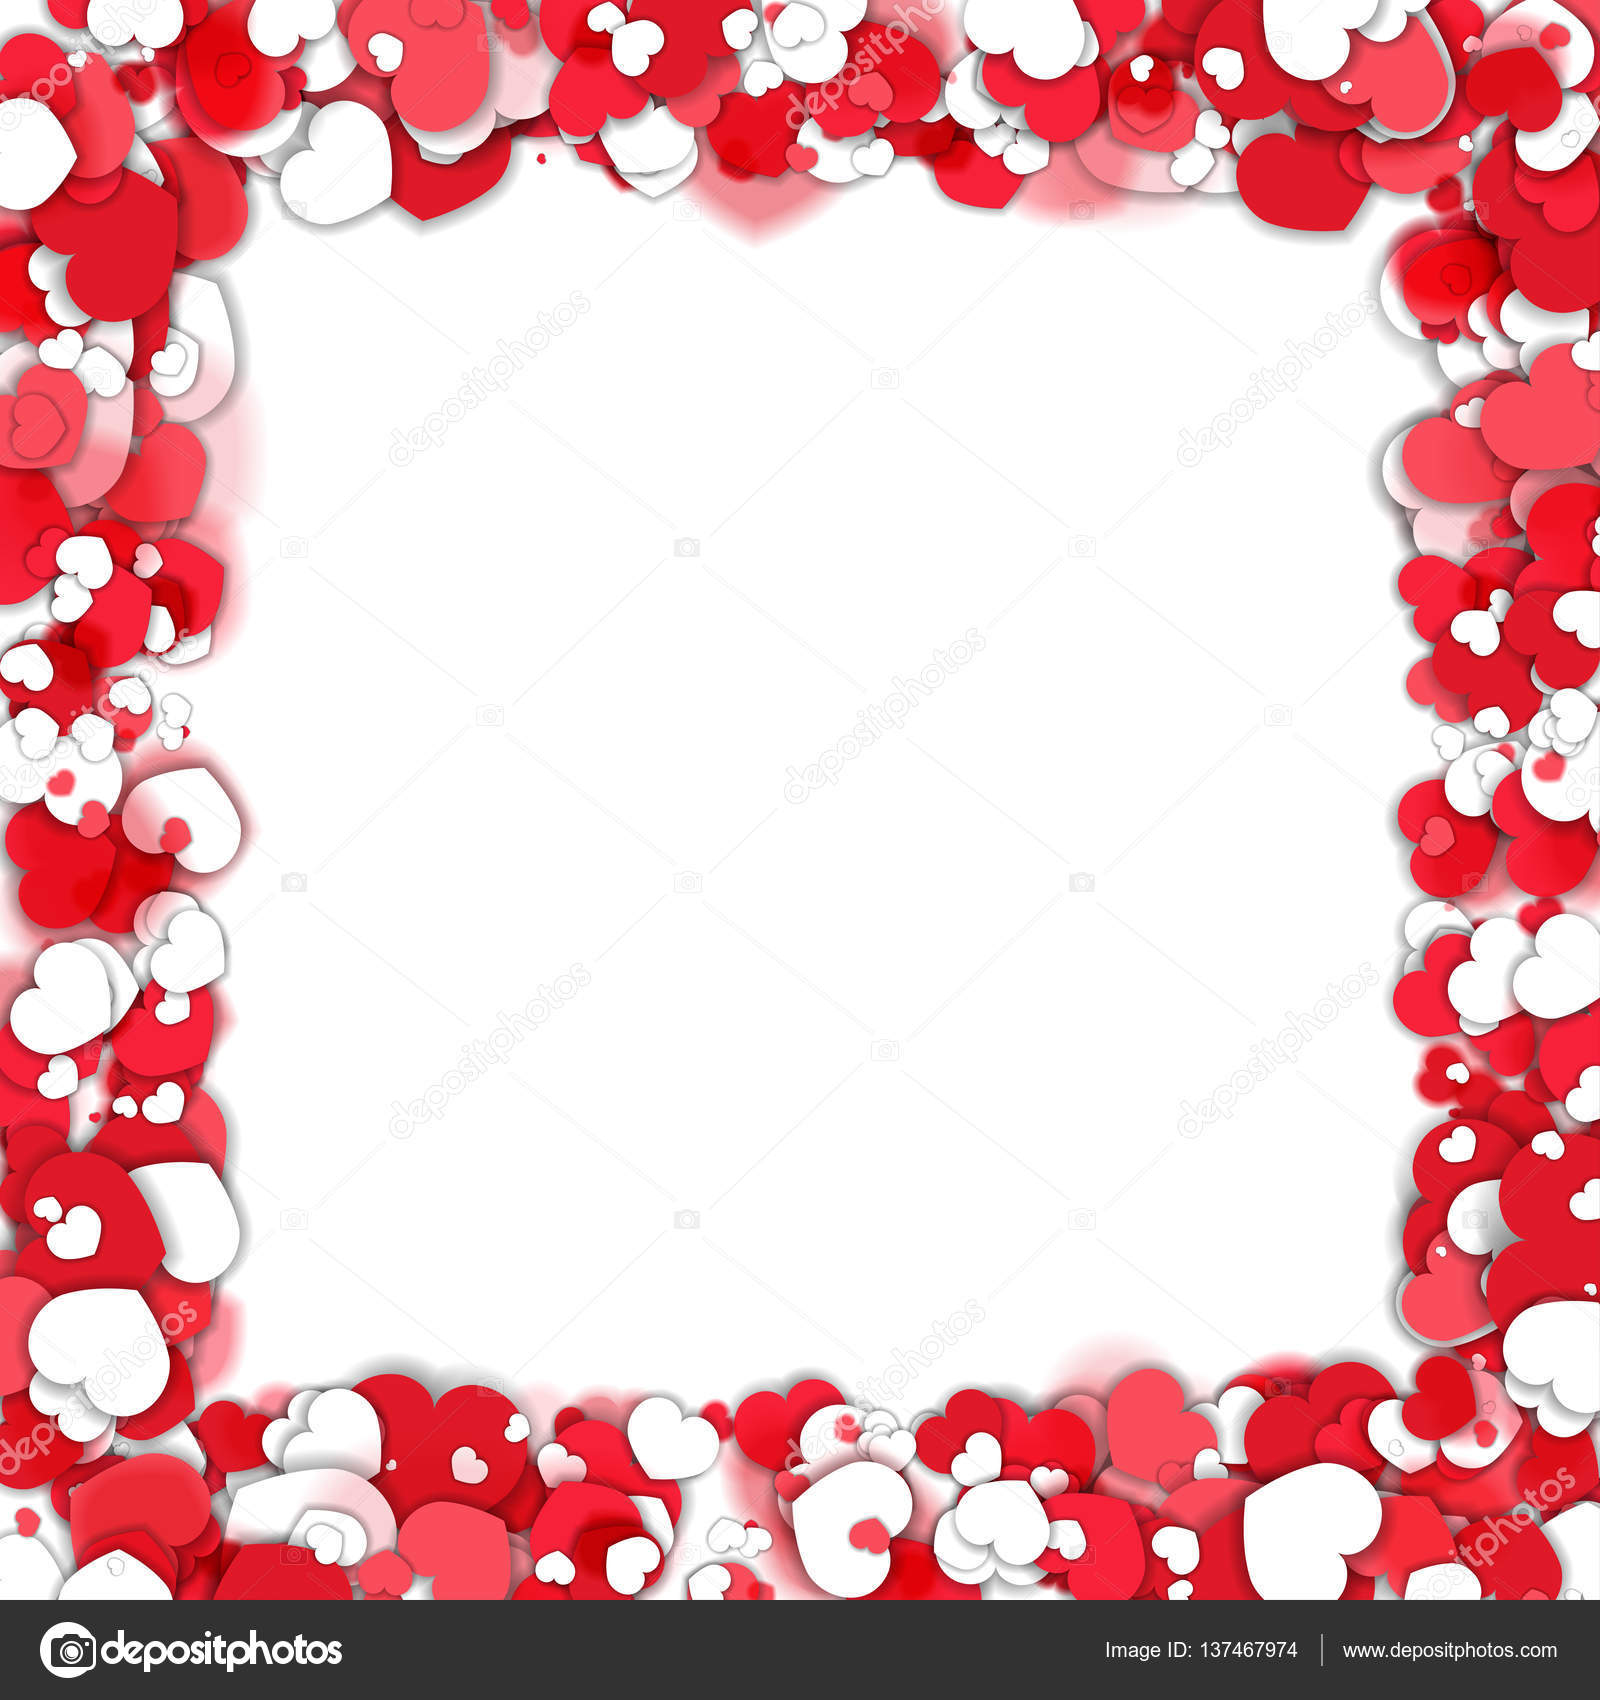 Valentine day frame with hearts — Stock Vector © robisklp #137467974